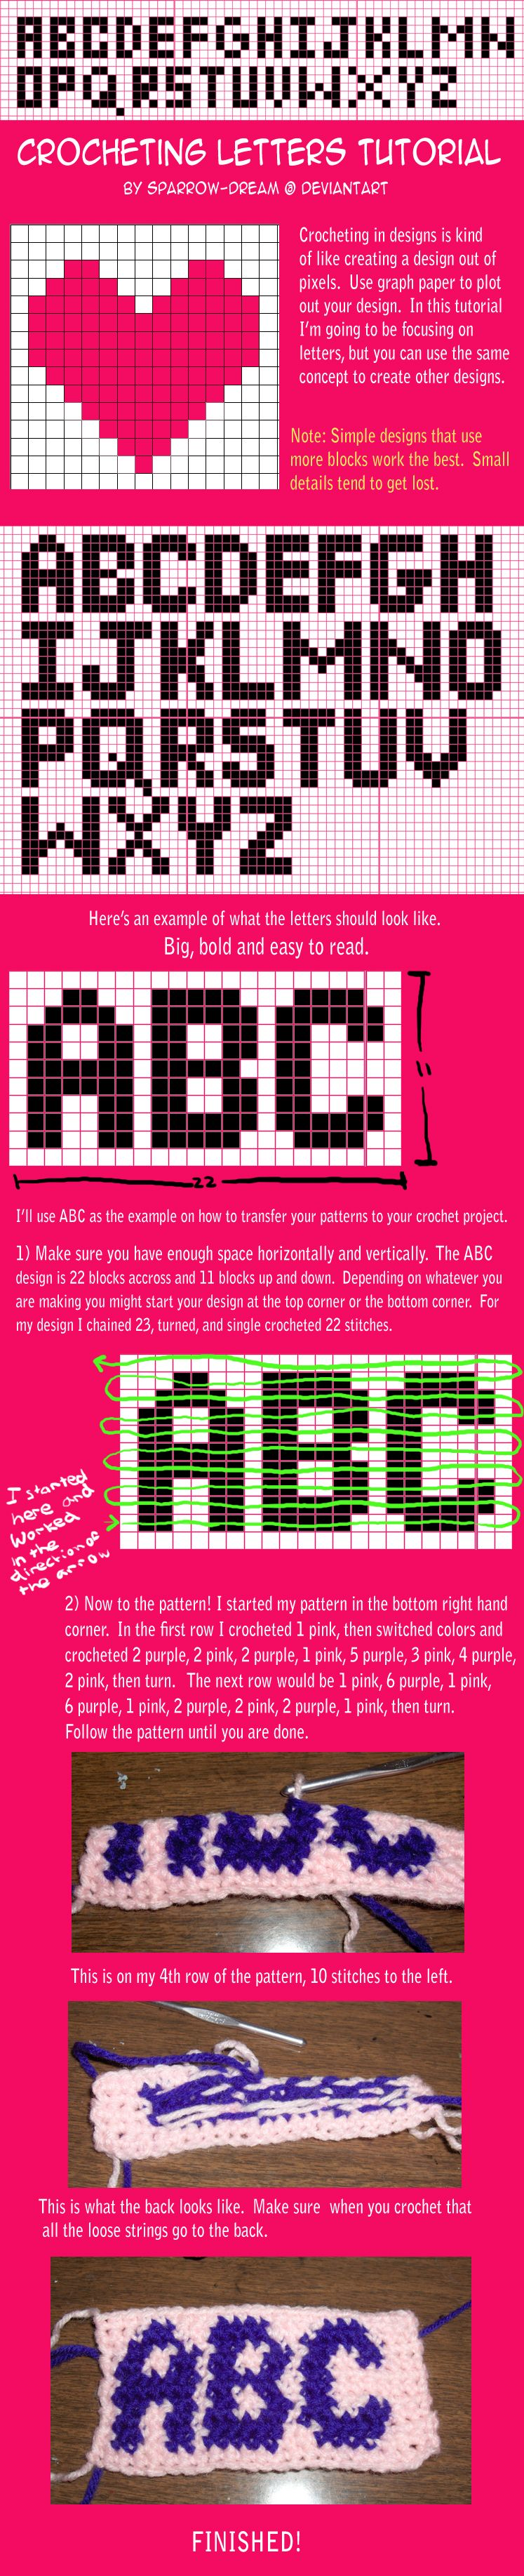 Crocheting Letters Tutorial by Sparrow-dream.deviantart.com on ...